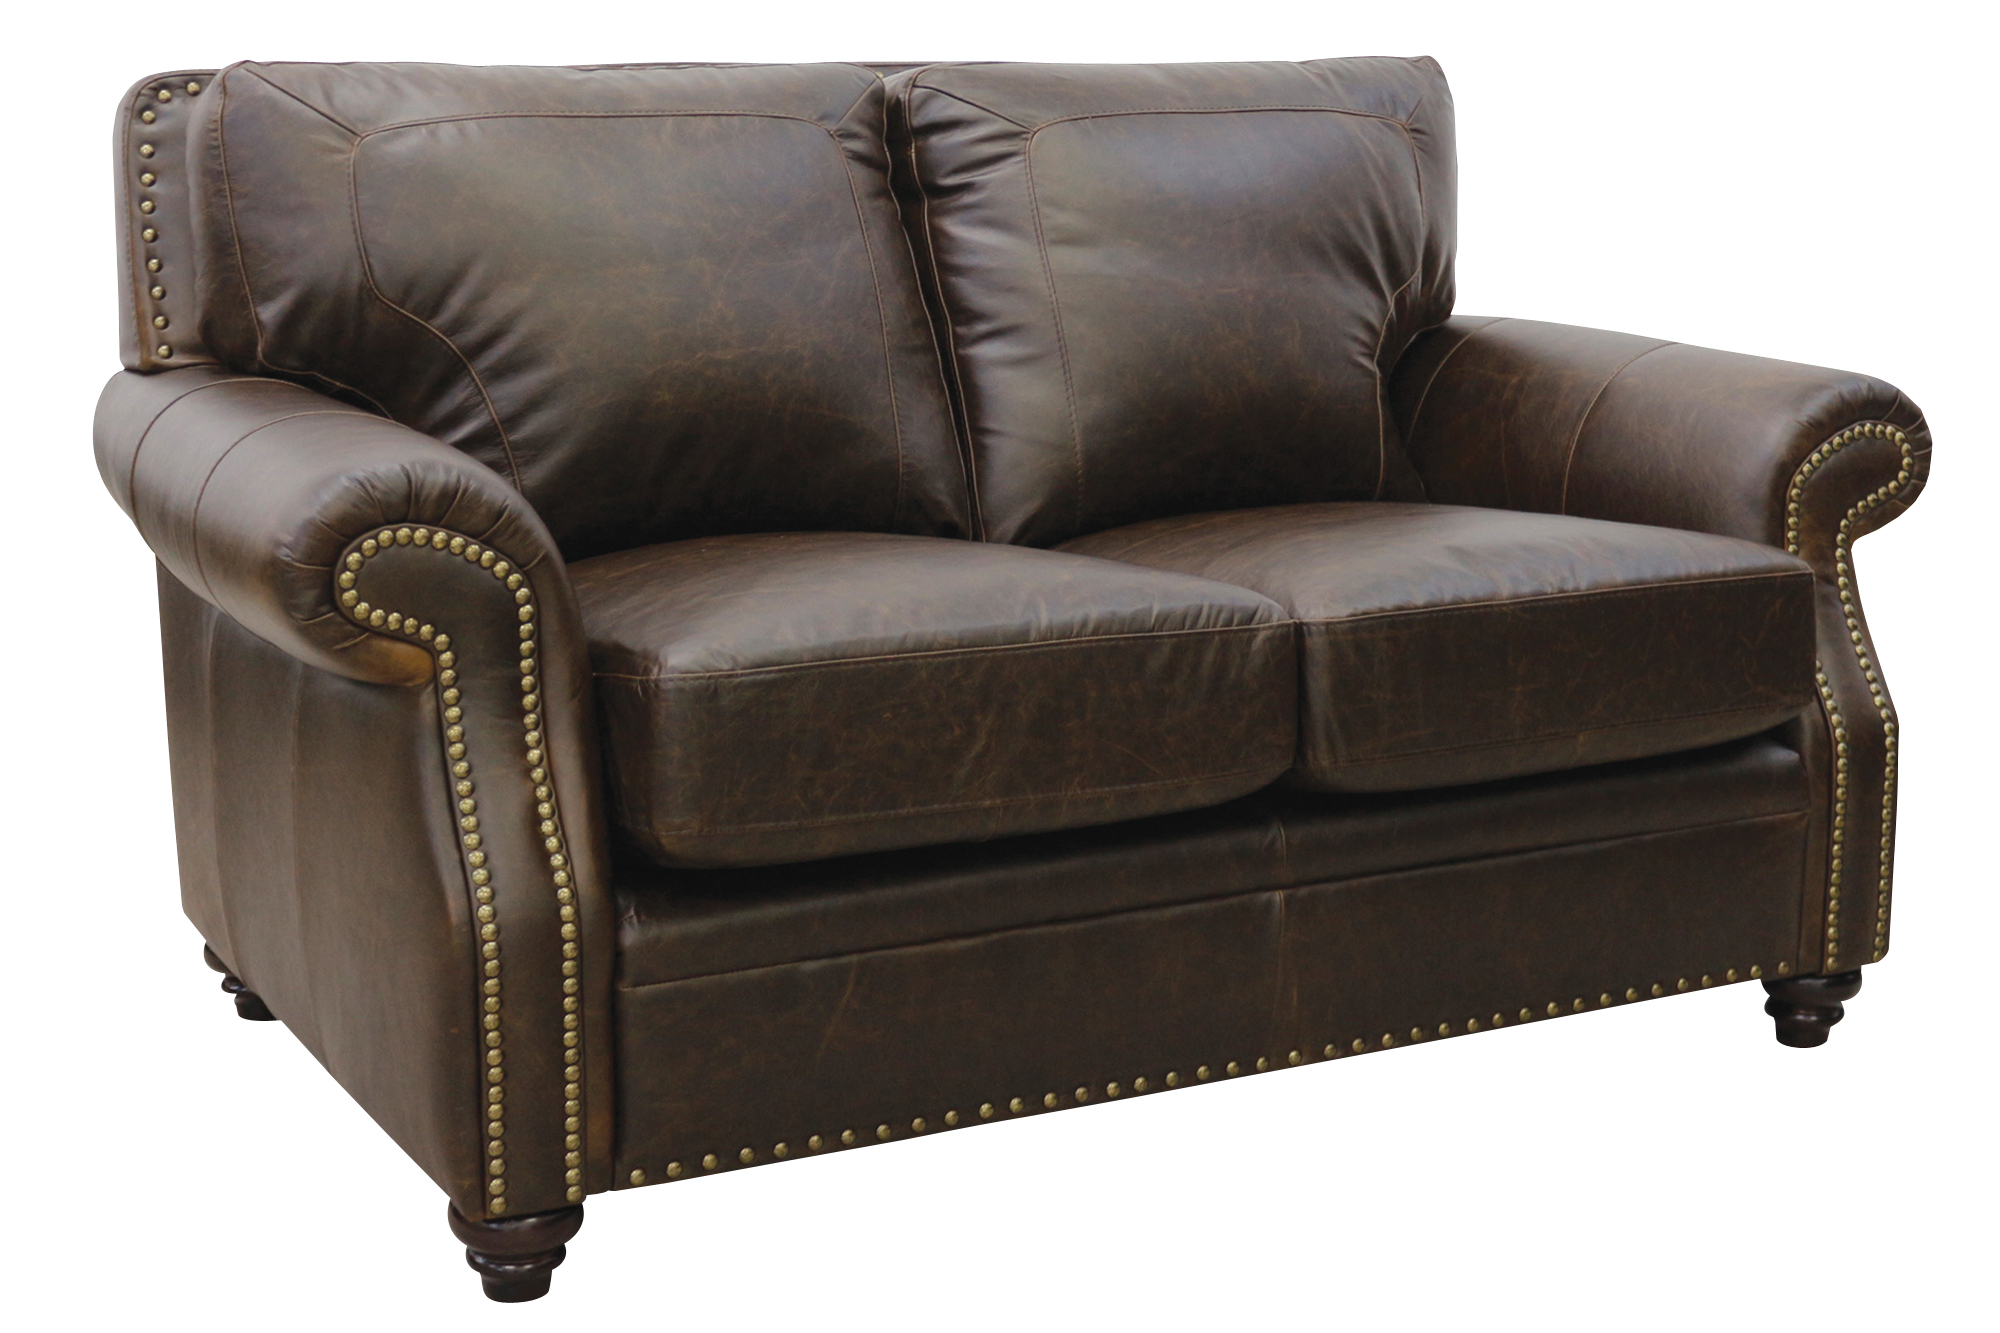 New Luke Leather Furniture Italian Made Mason Chocolate Brown Loveseat Ebay